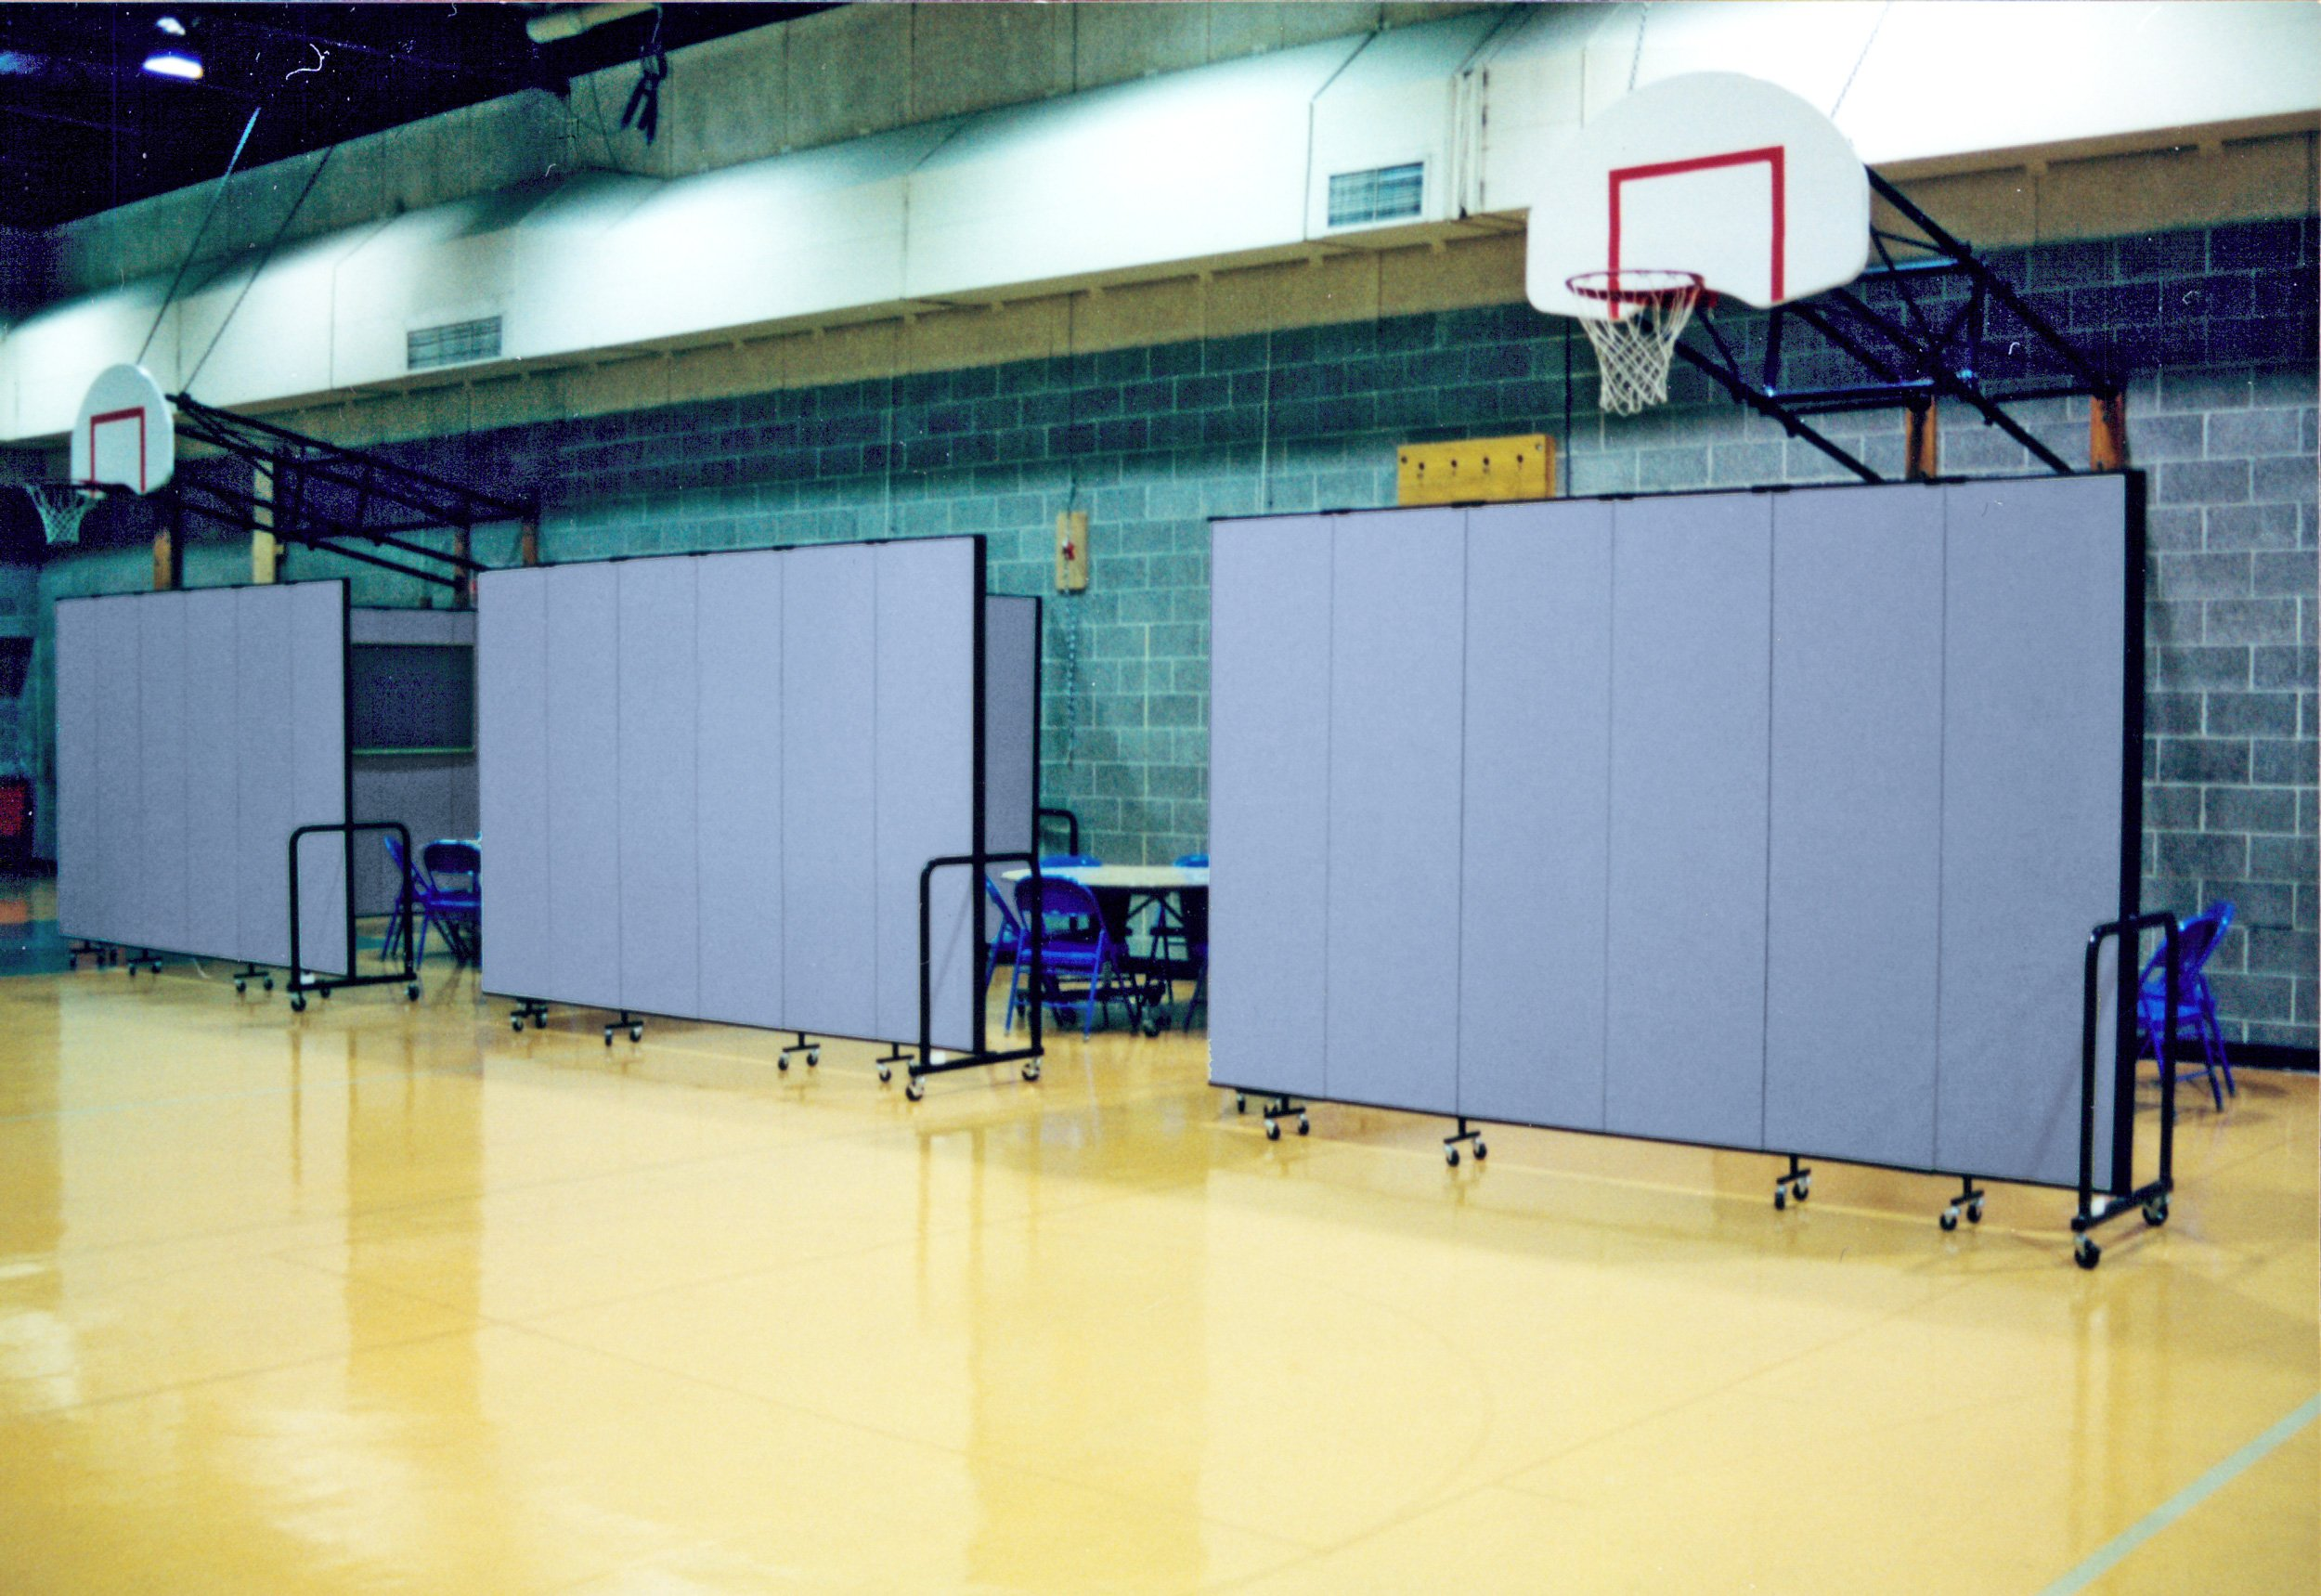 24 ft. long dividers easily create rooms approximately 13 ft. by 11 ft